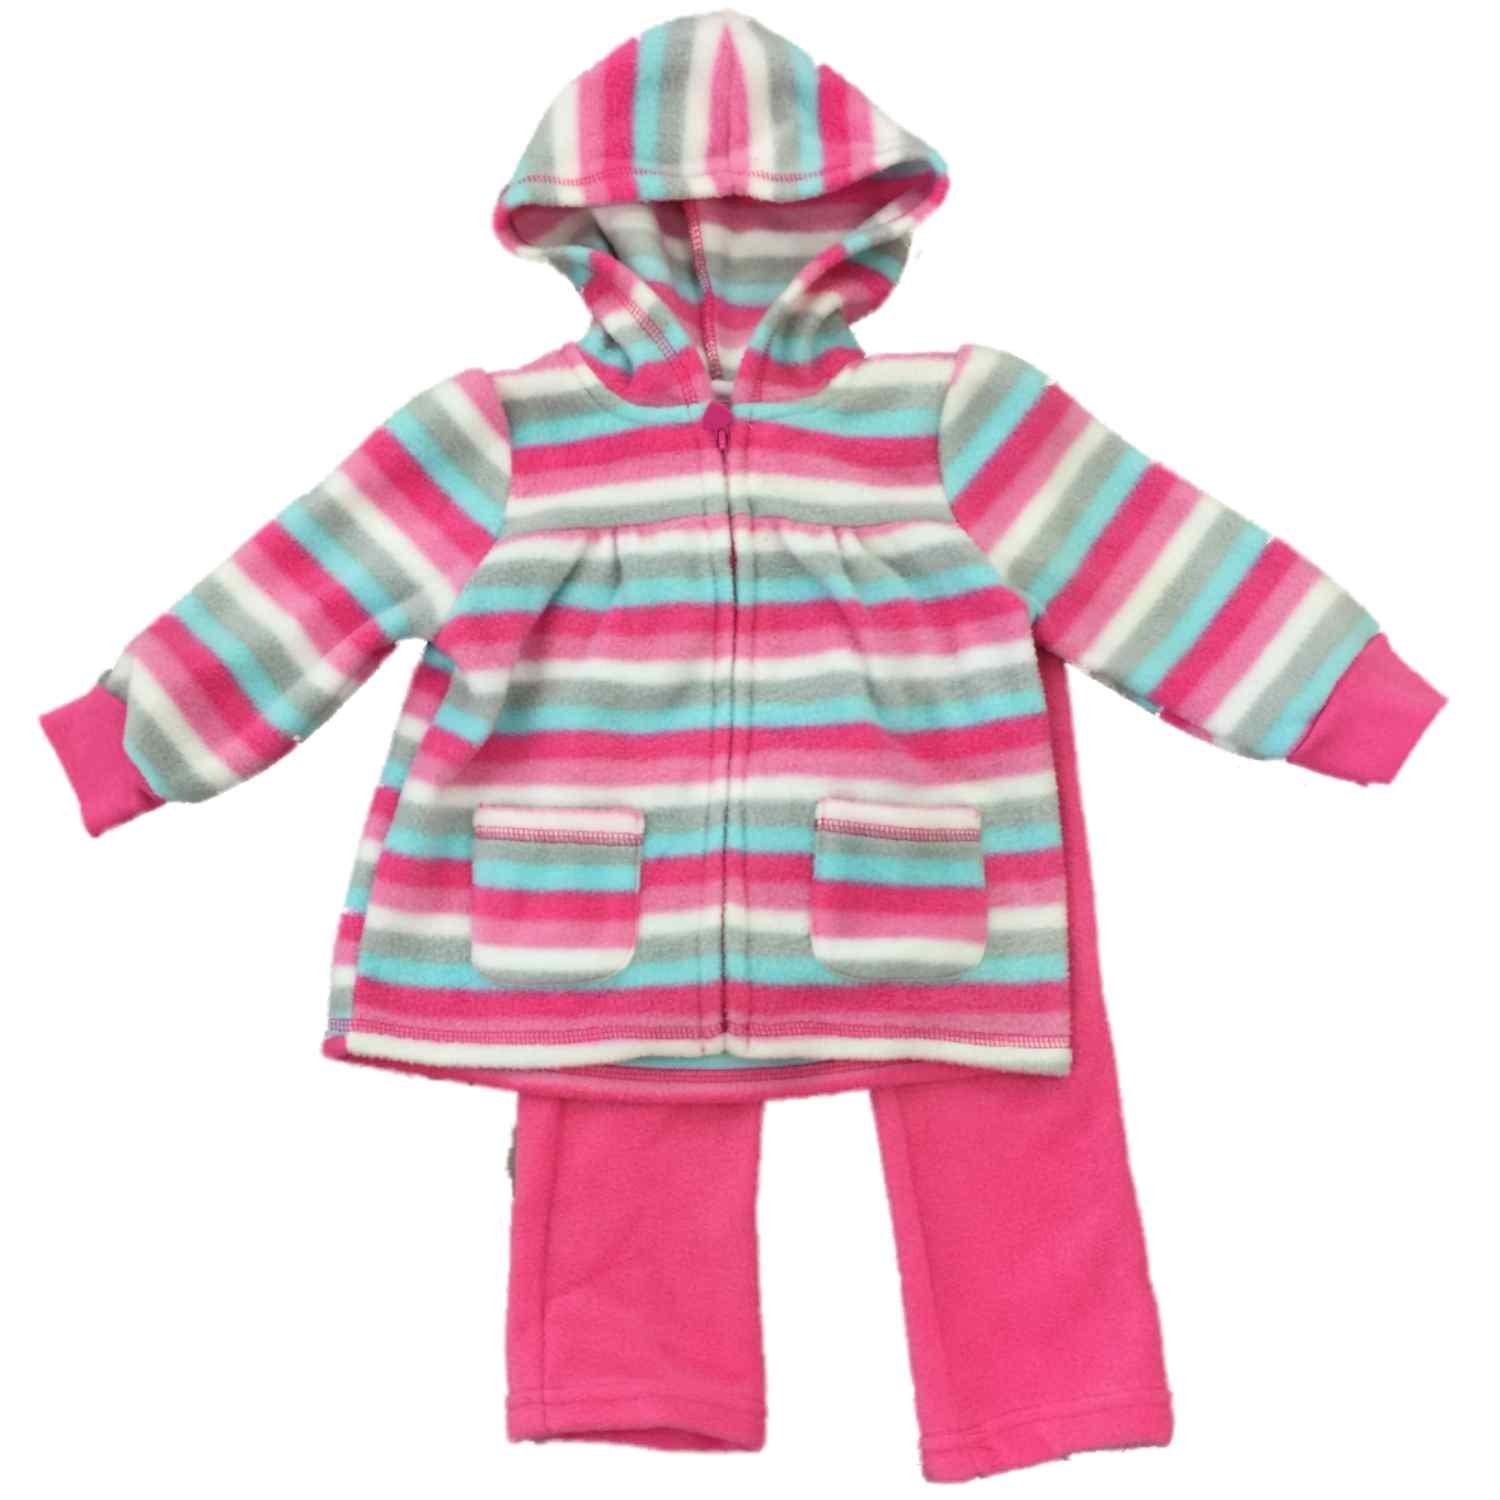 Amazon.com  Youngland Infant Toddler Pink Blue White   Gray Stripe Girls  Fleece Sweatsuit Outfit 18M  Clothing 50967fe6d653